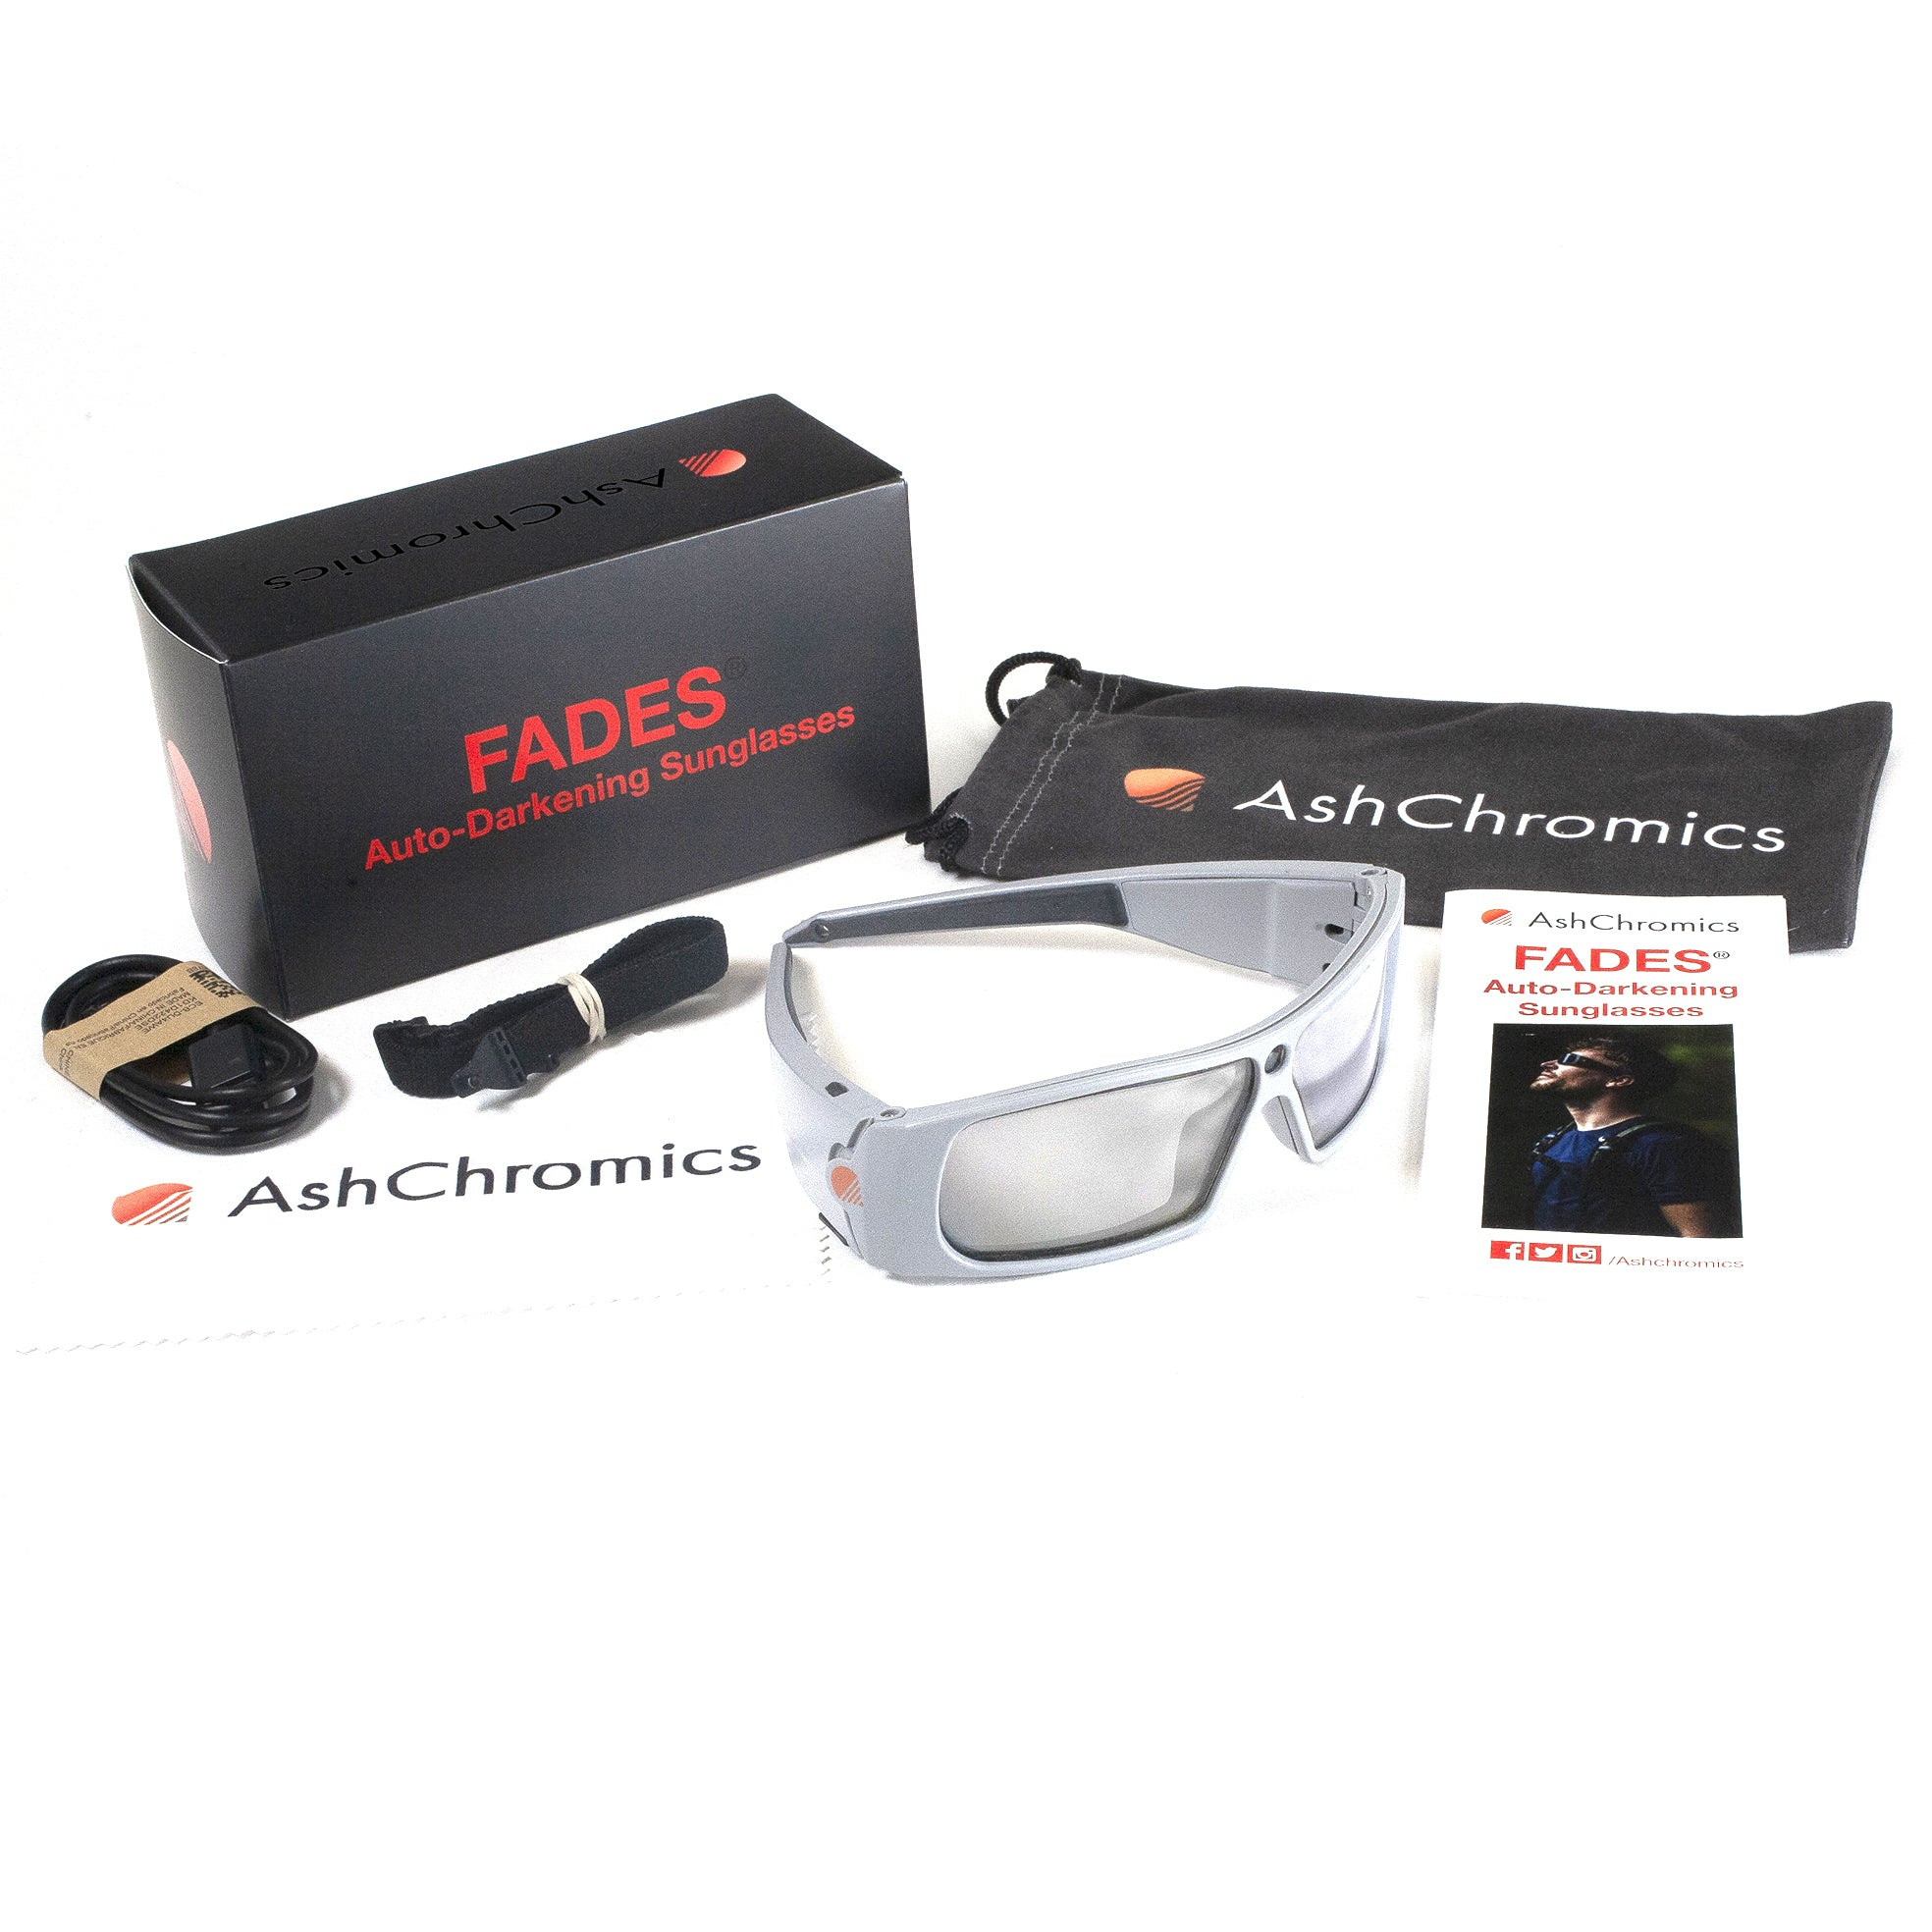 AshChromics Auto Darkening Biking Sunglasses Package